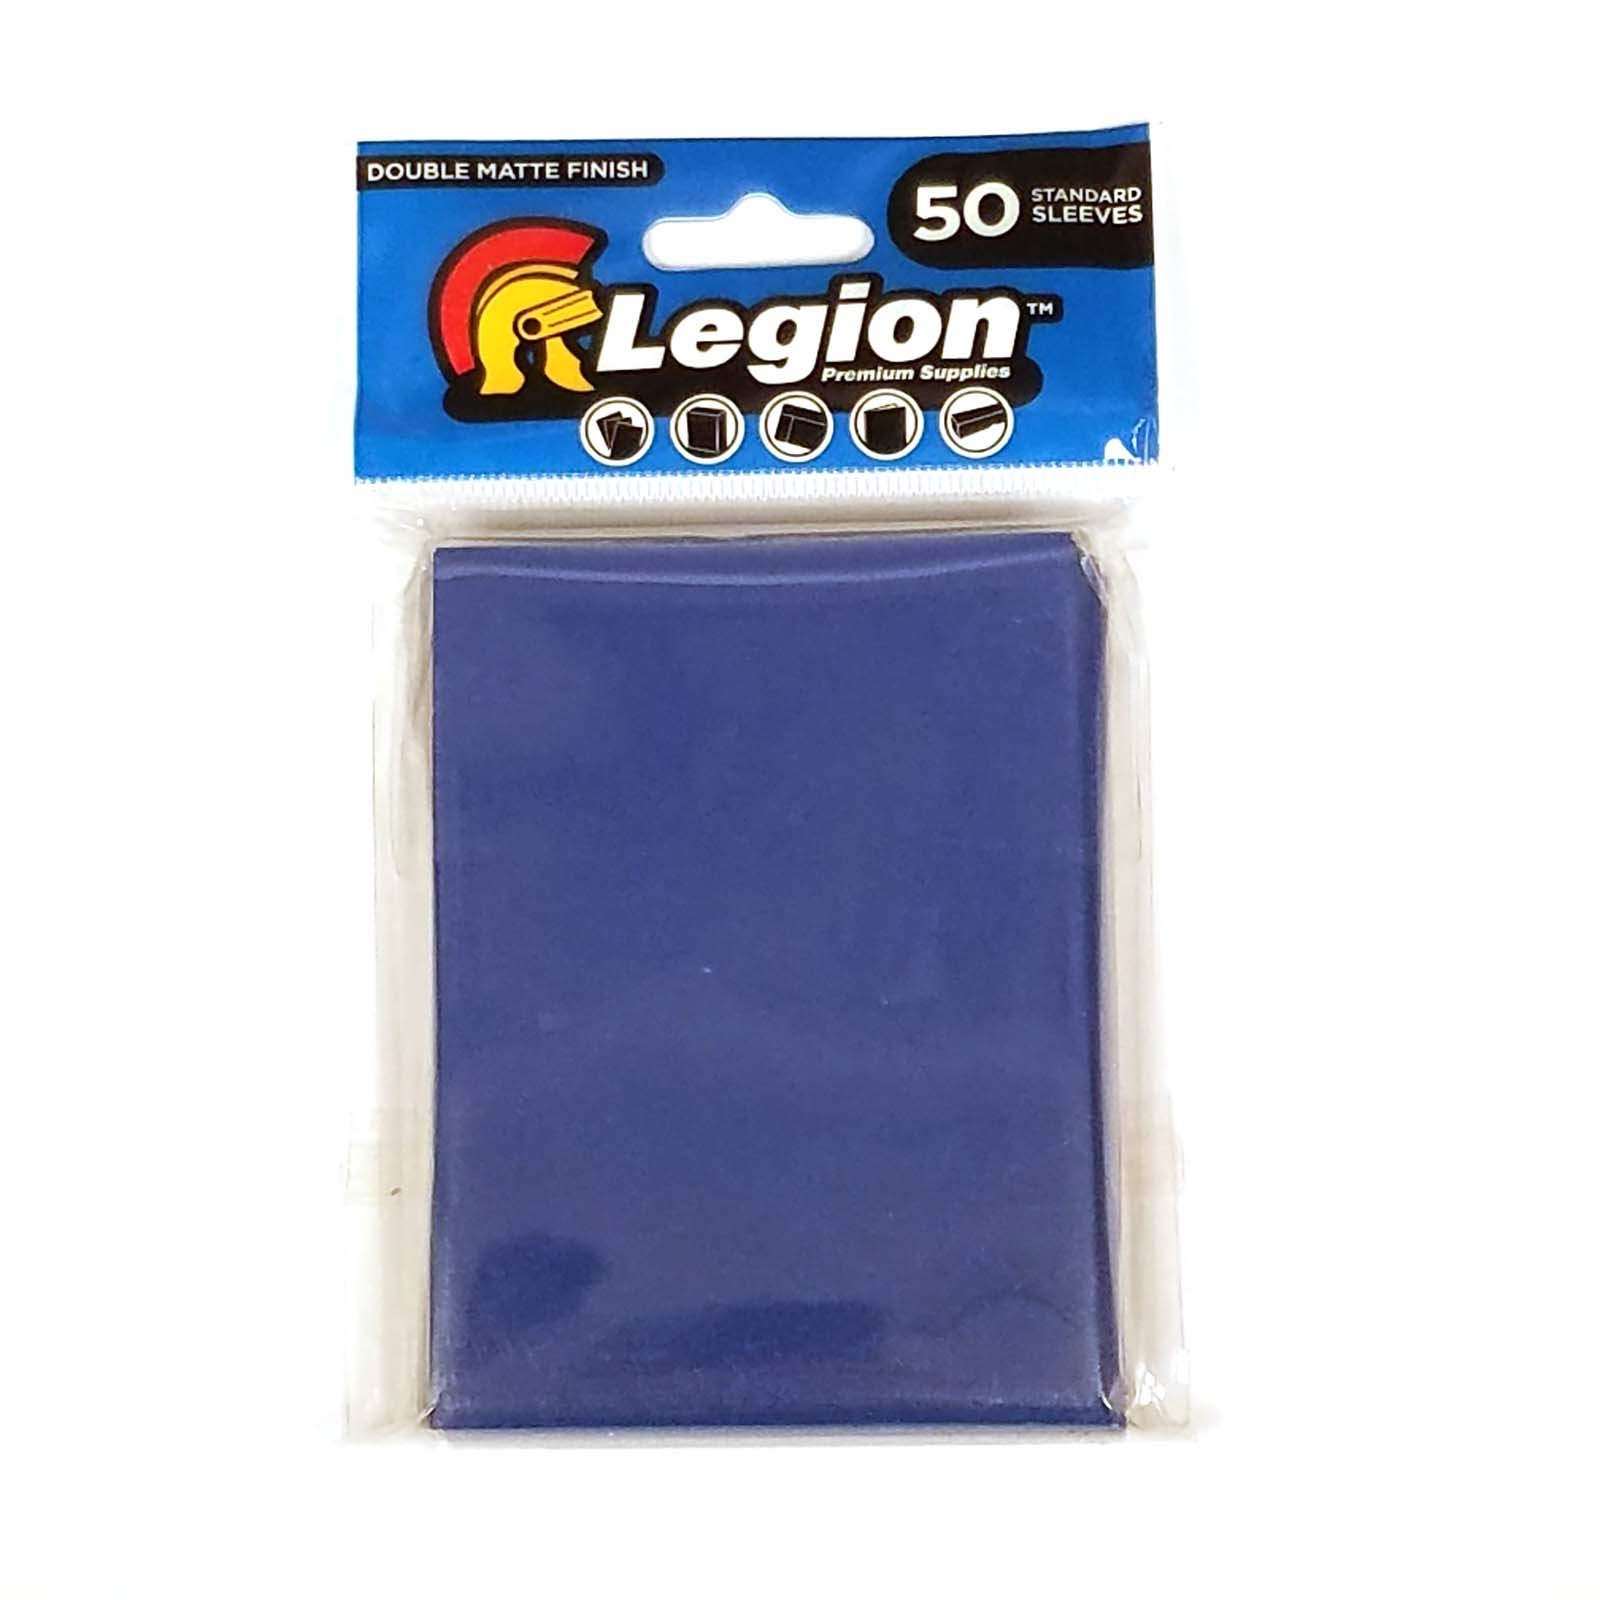 50 Legion Stand By Card Sleeves with Matte Finish